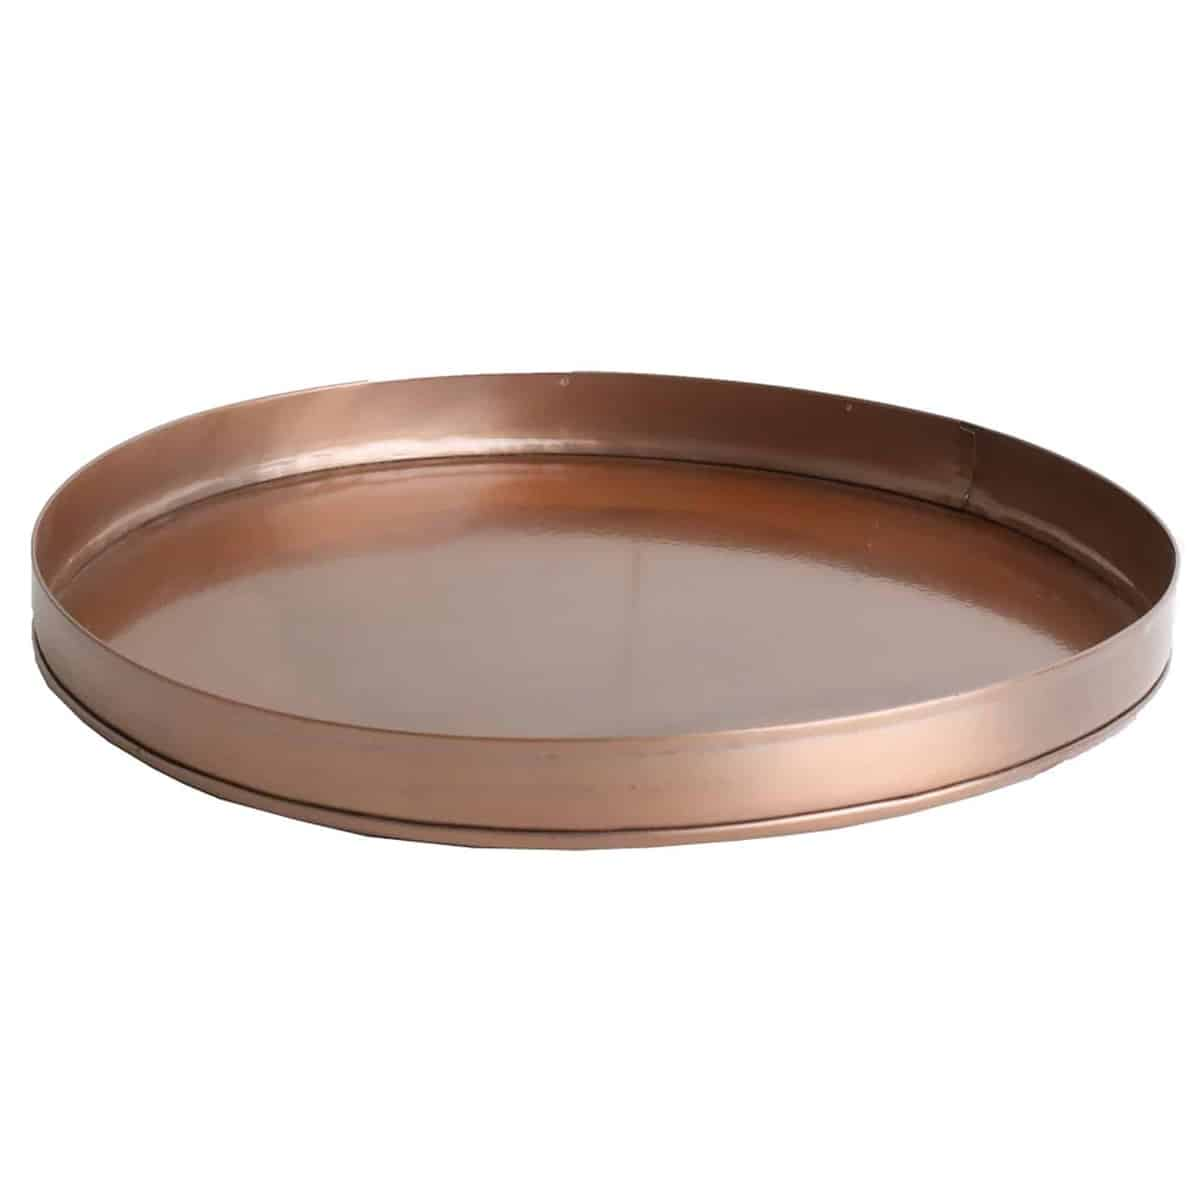 angle view of copper round tray